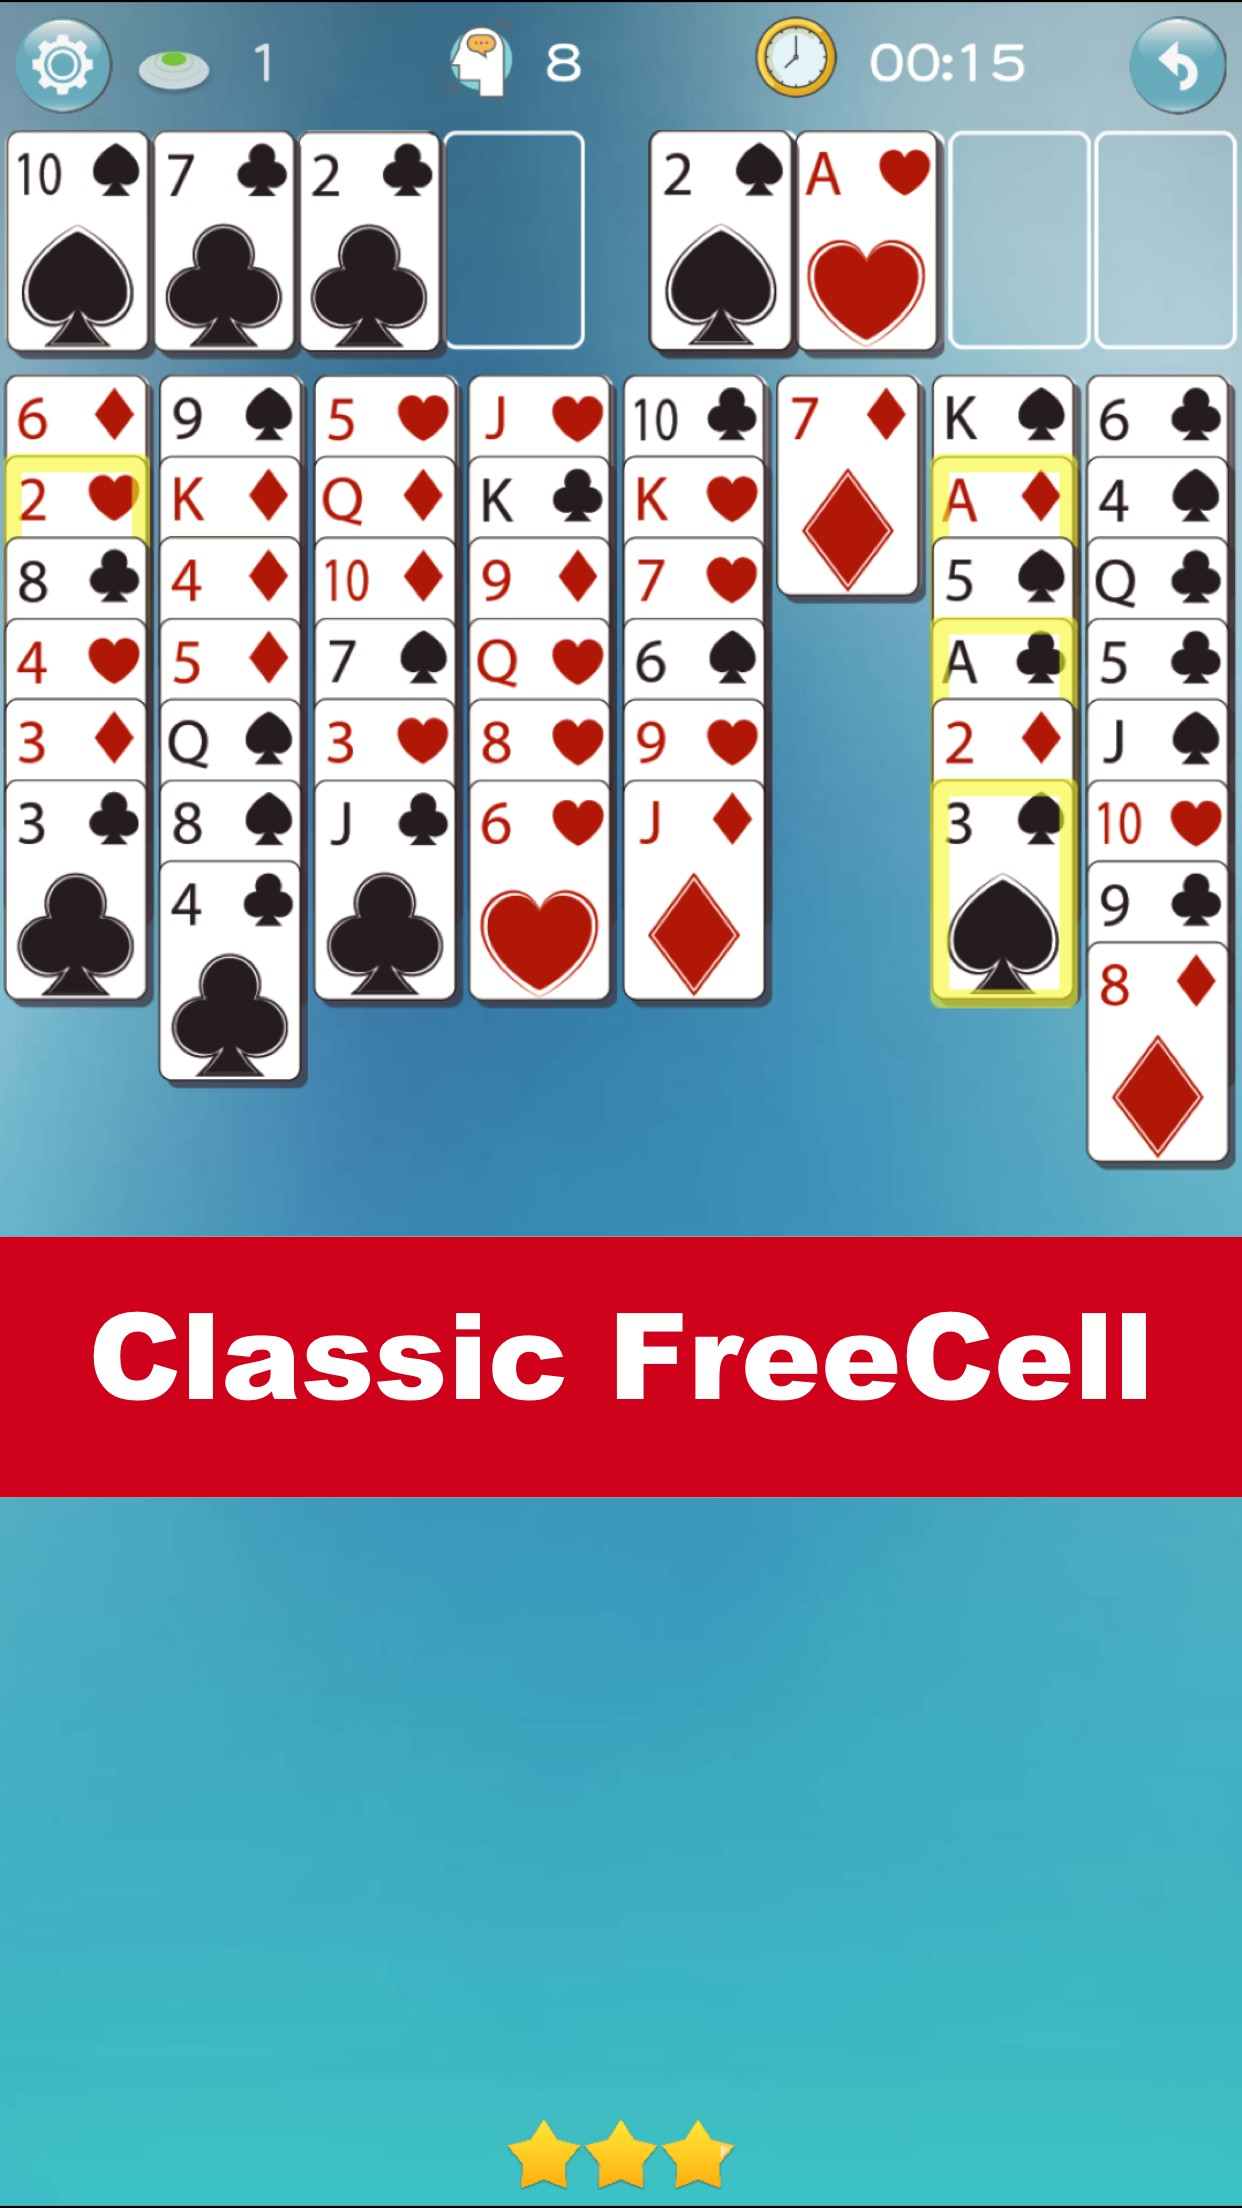 FreeCell Go - Self training and become master